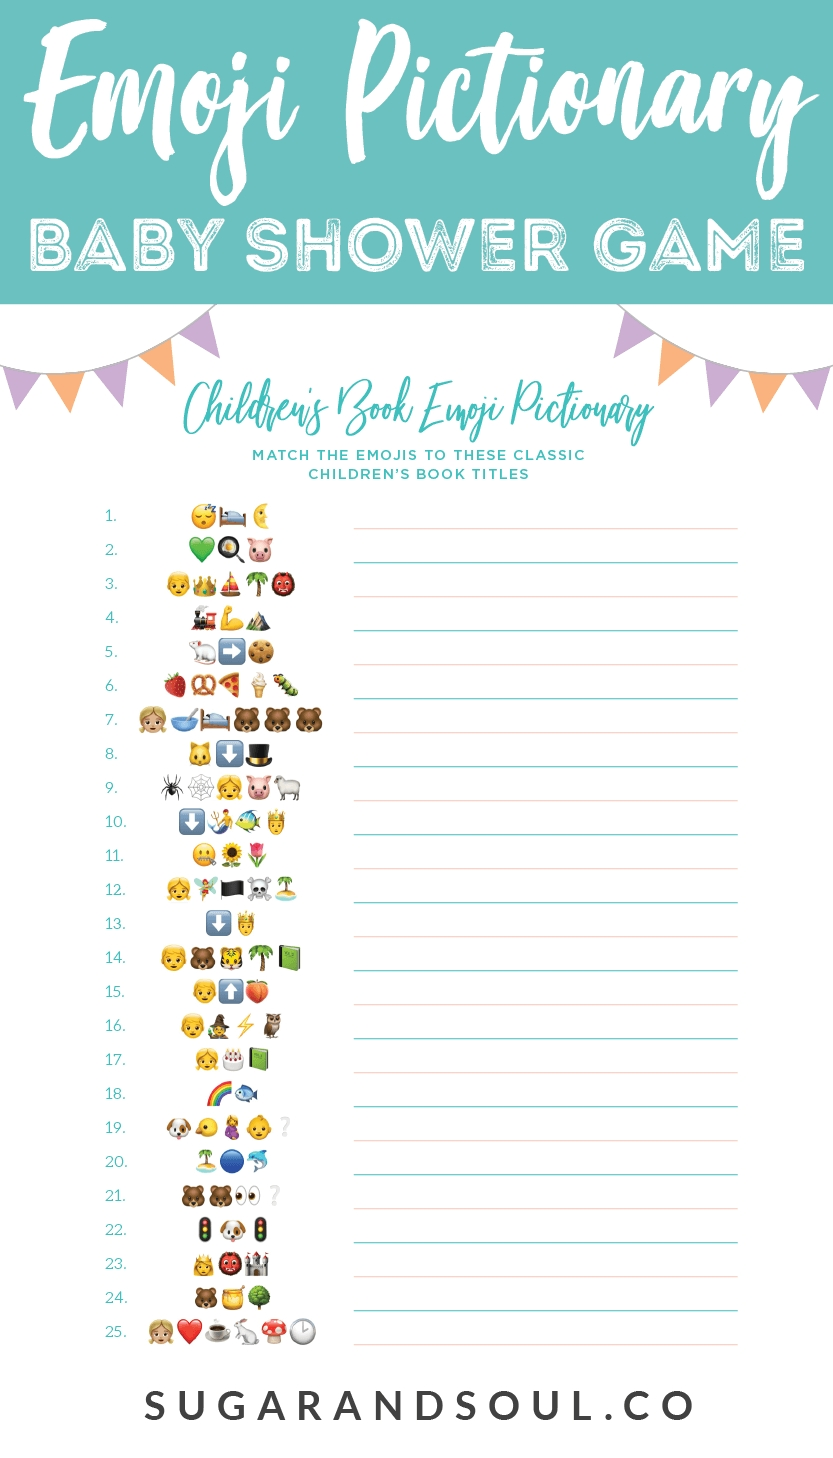 Emoji Pictionary Baby Shower Game Free Printable | Storybook